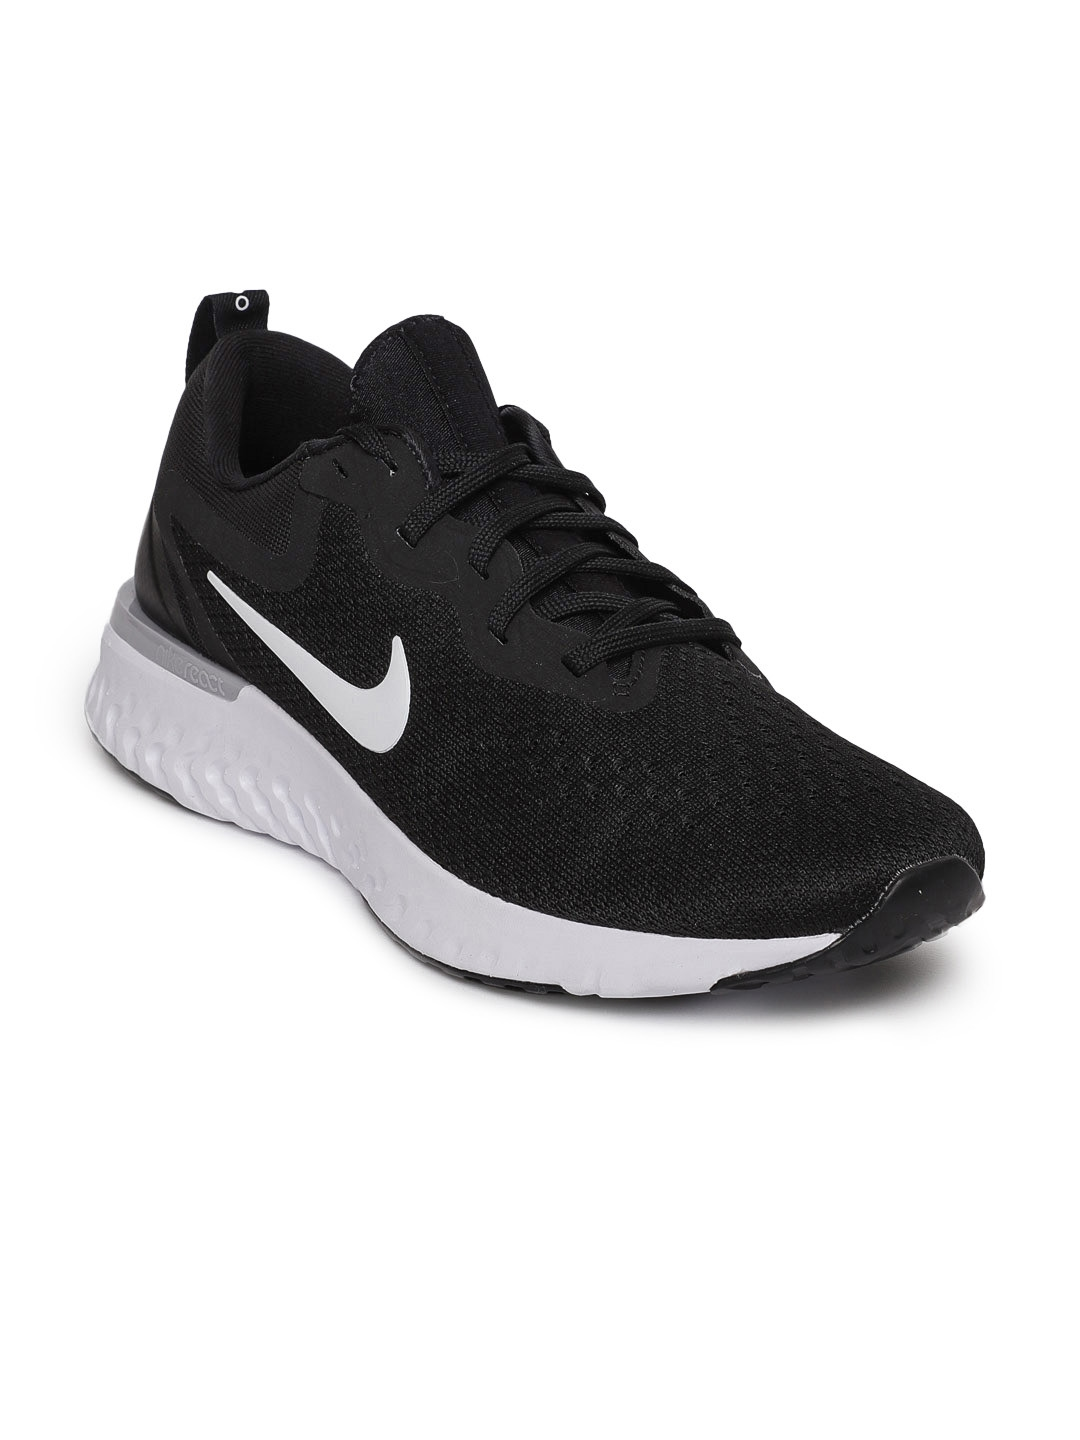 a51e0ddcf8d70 Buy Nike Women Black Odyssey React Running Shoes - Sports Shoes for ...